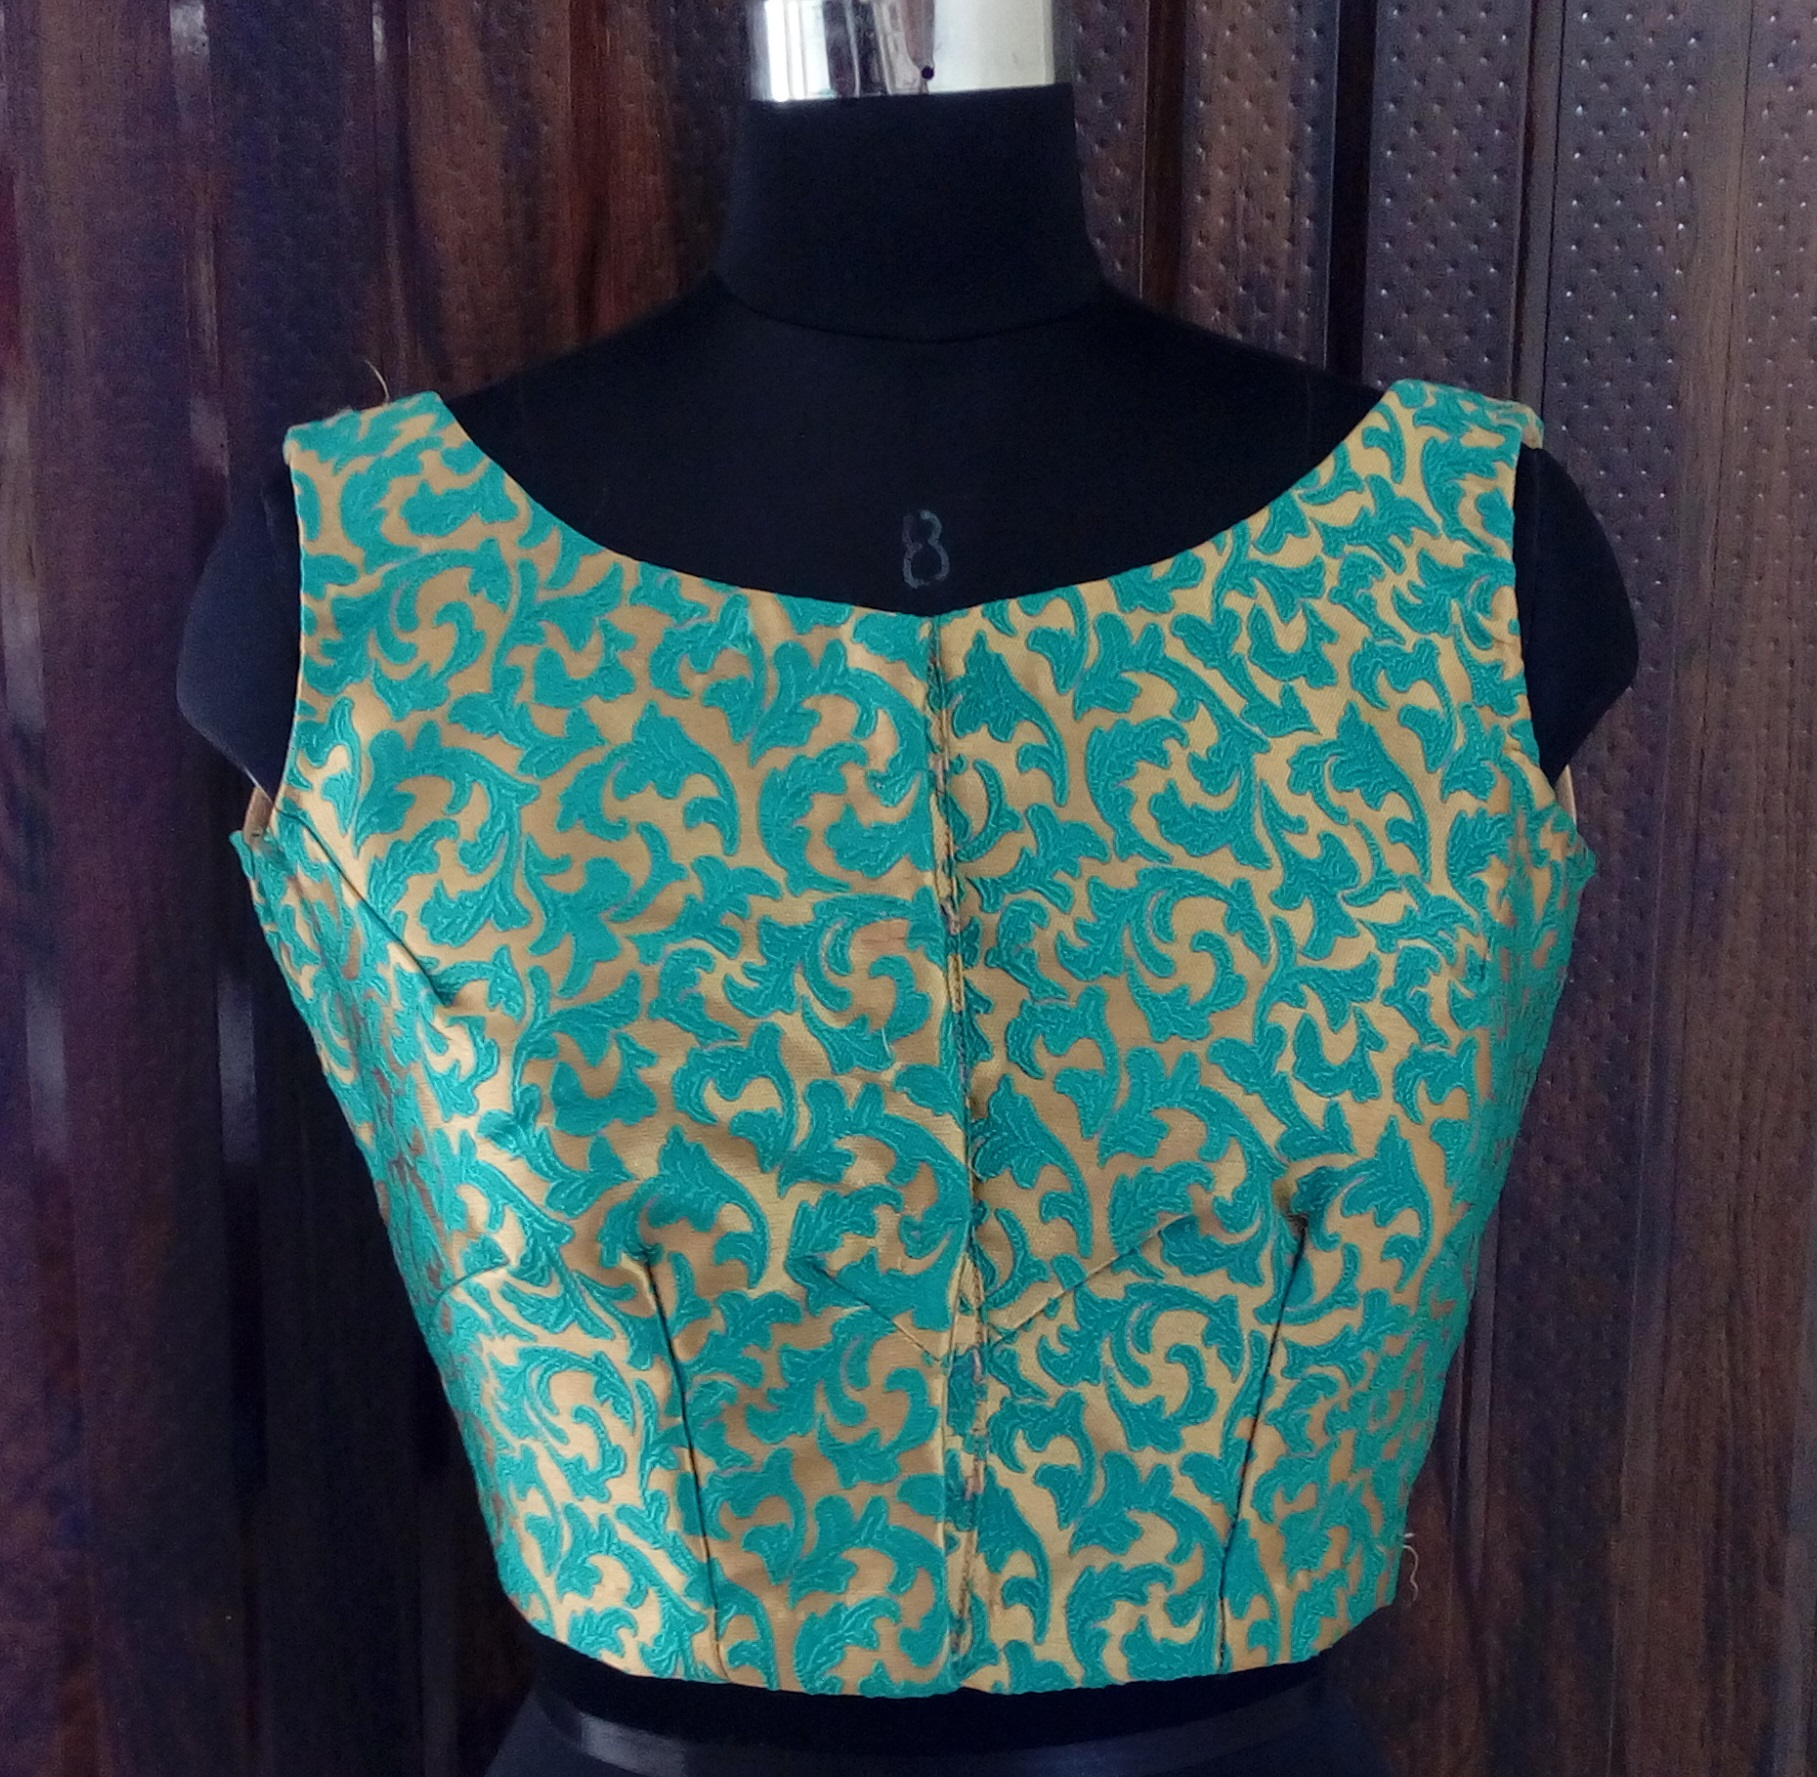 Sky blue brocade blouse